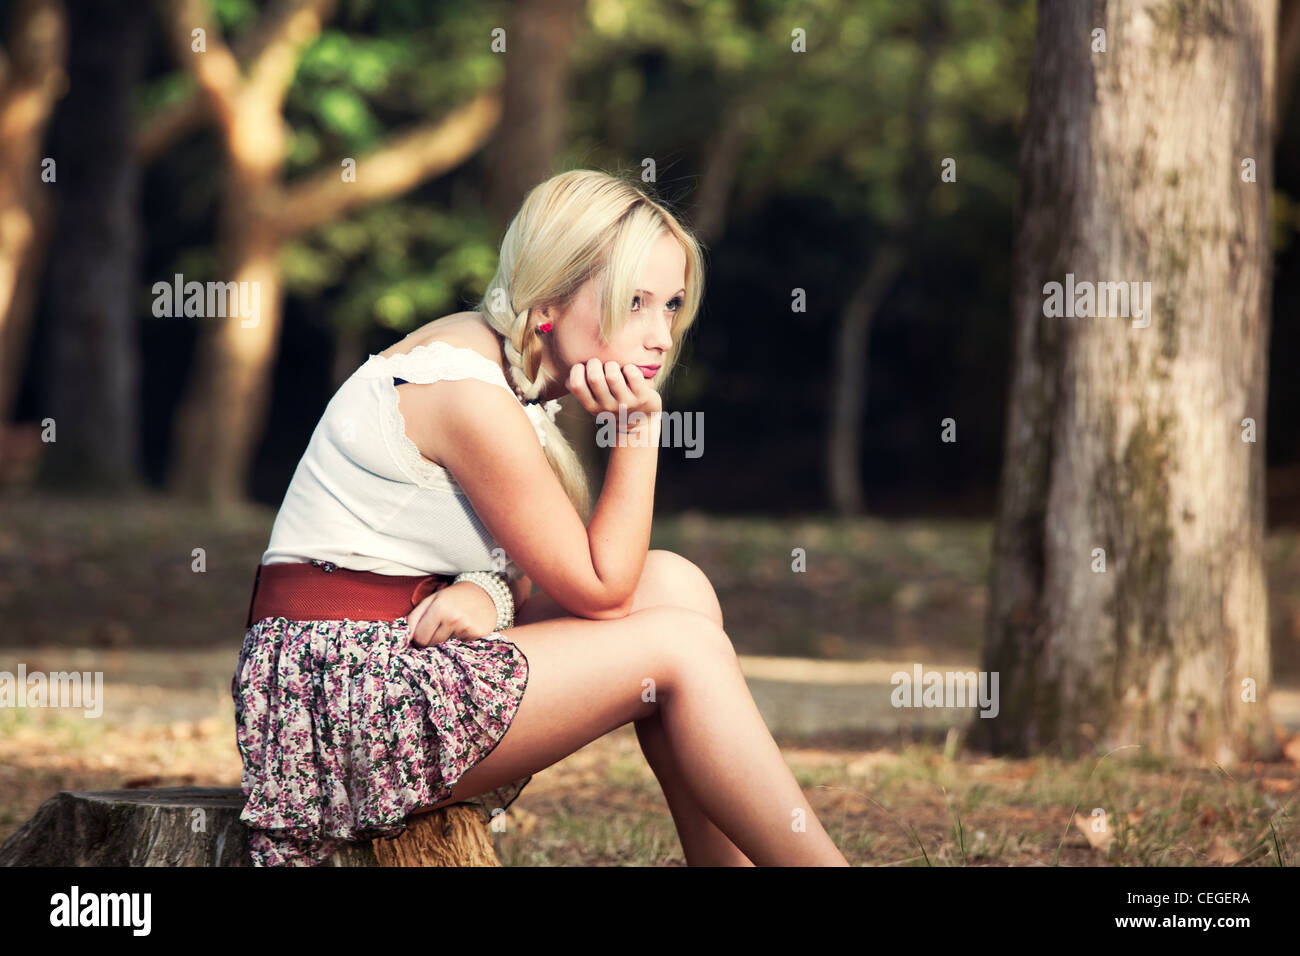 Beautiful young woman sitting on a trunk of a tree and thinking on something - Stock Image